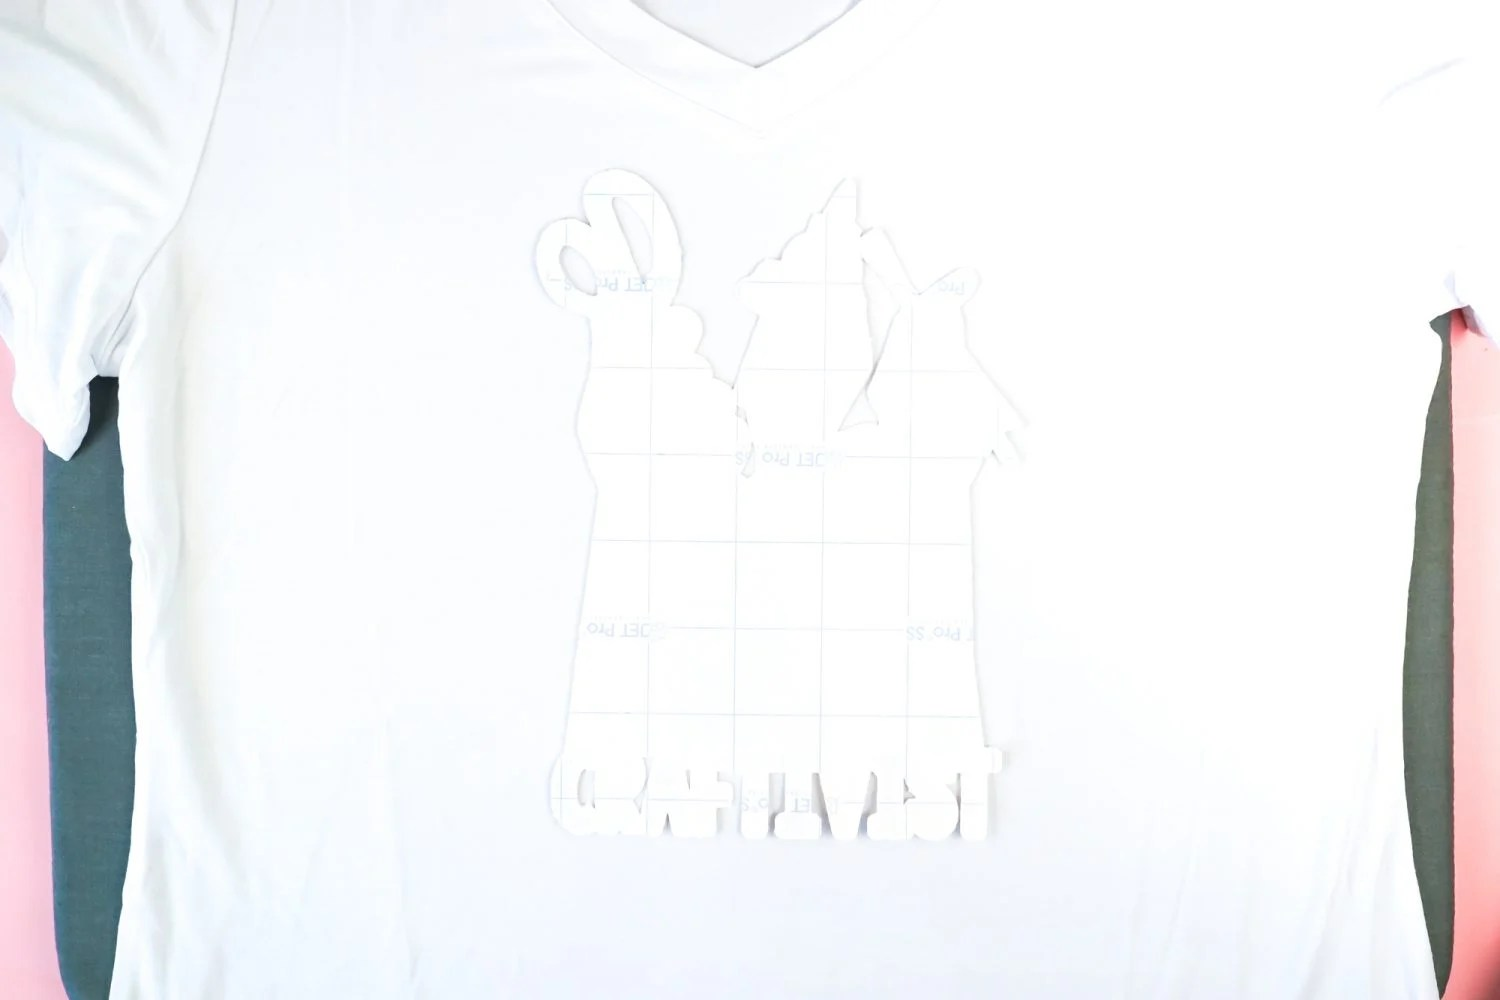 Image placed face down on a t-shirt.